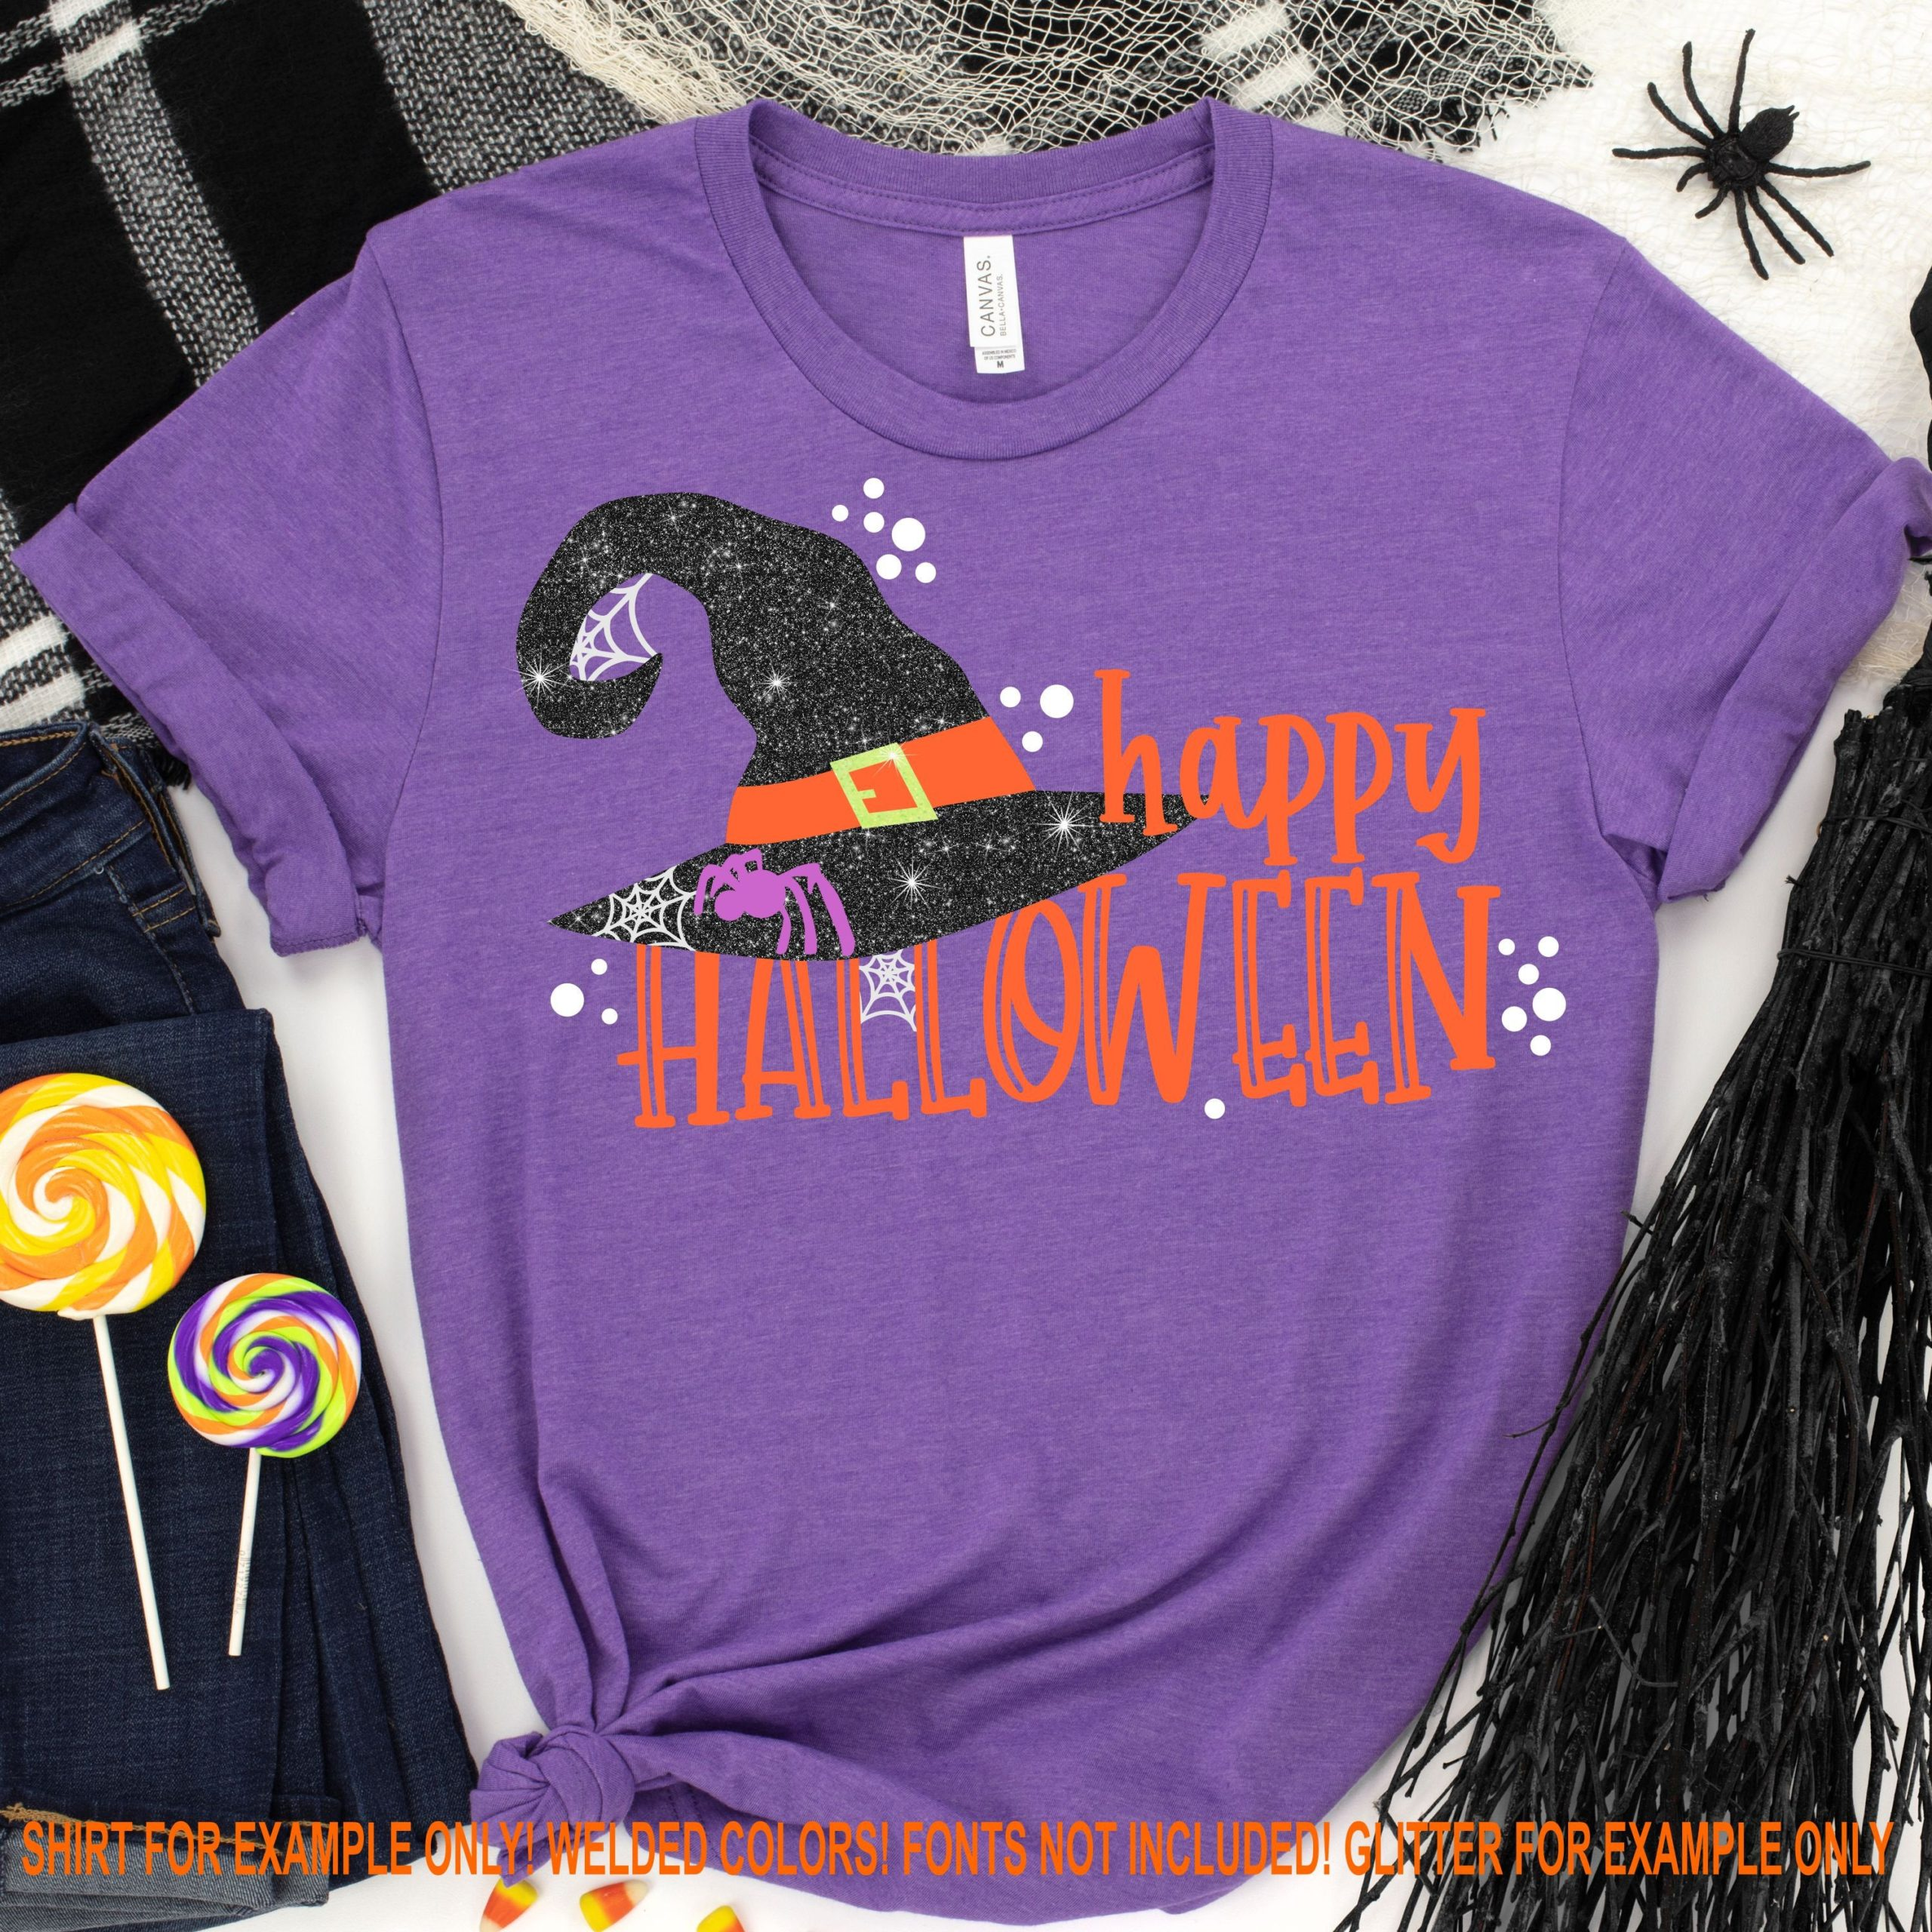 Hello-my-pretties-witch-svg-witch-hat-svg-halloween-svg-teacher-svg-dxf-eps-witch-svg-cutter-files-svg-for-cricutwitch-shirt-svg-5f6f8bbe